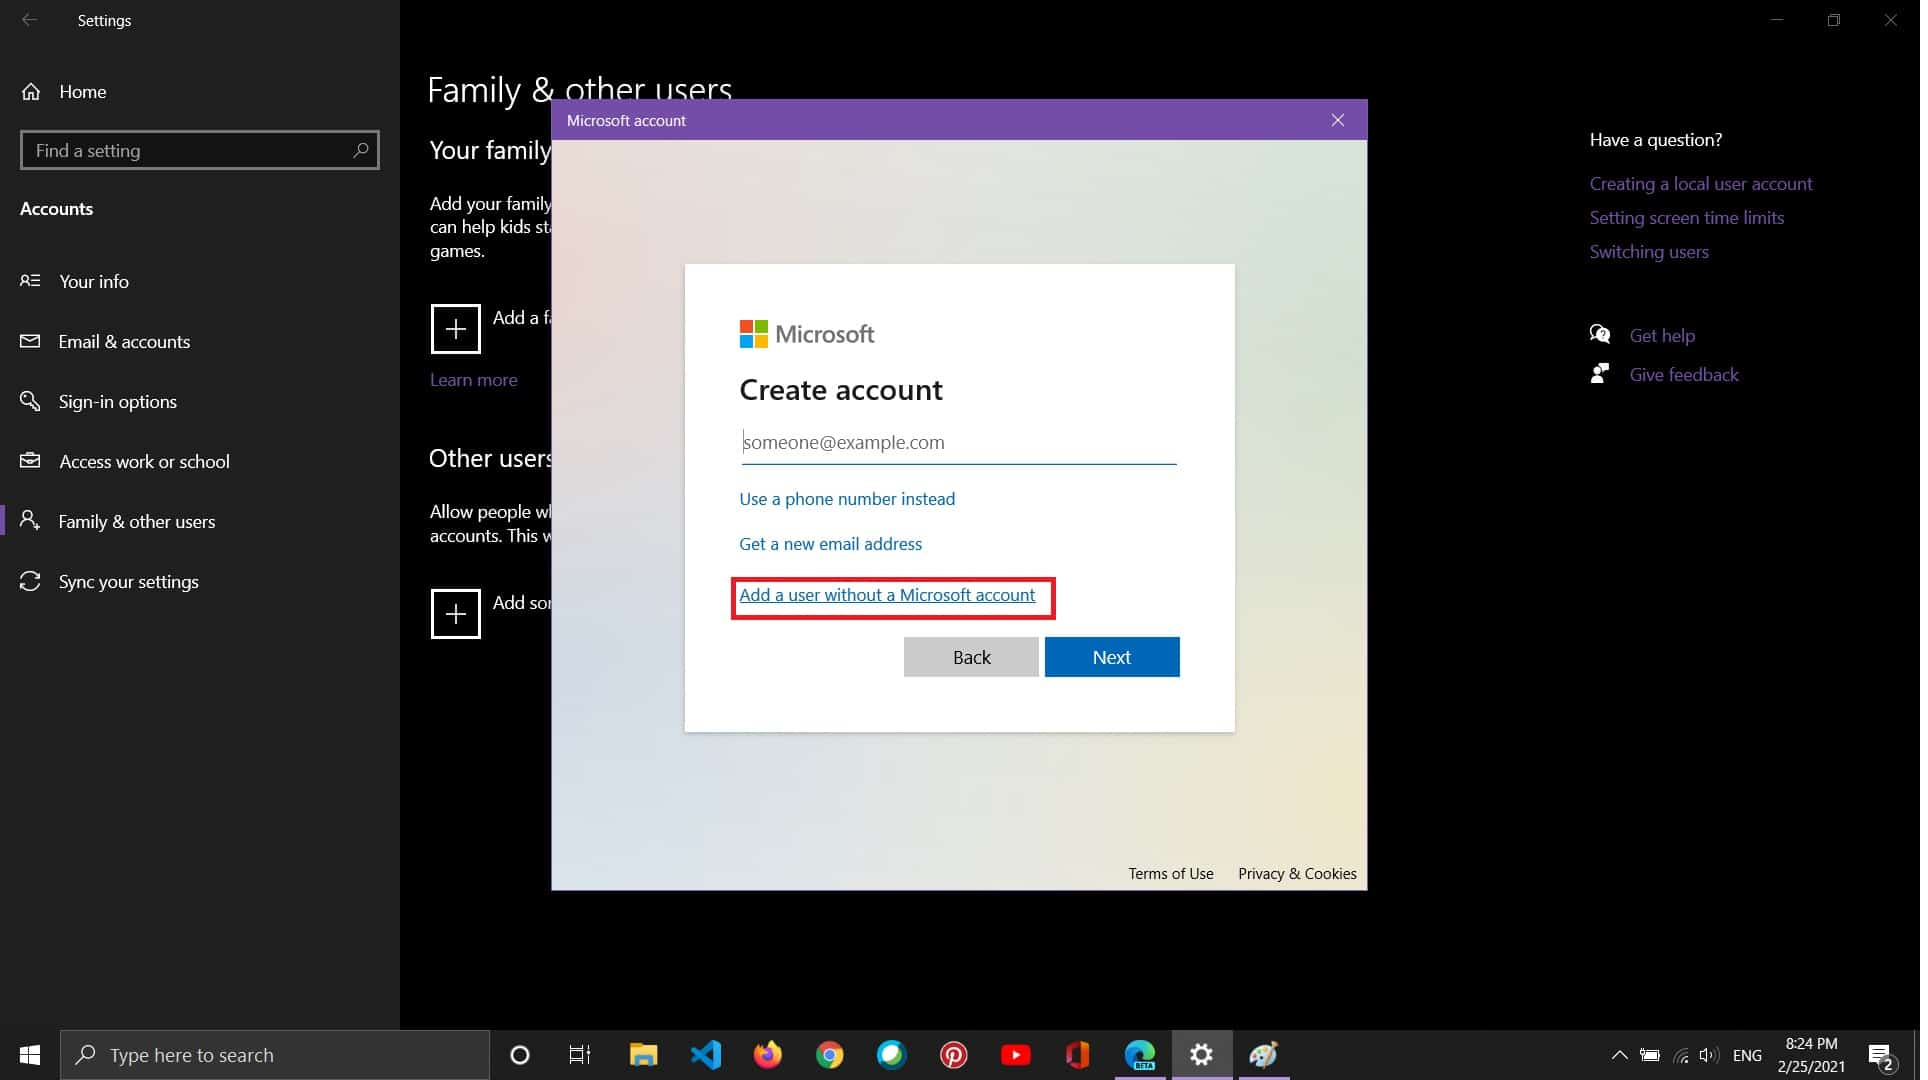 [FIXED] - Windows shell experience host suspended! - how to create use account in windows